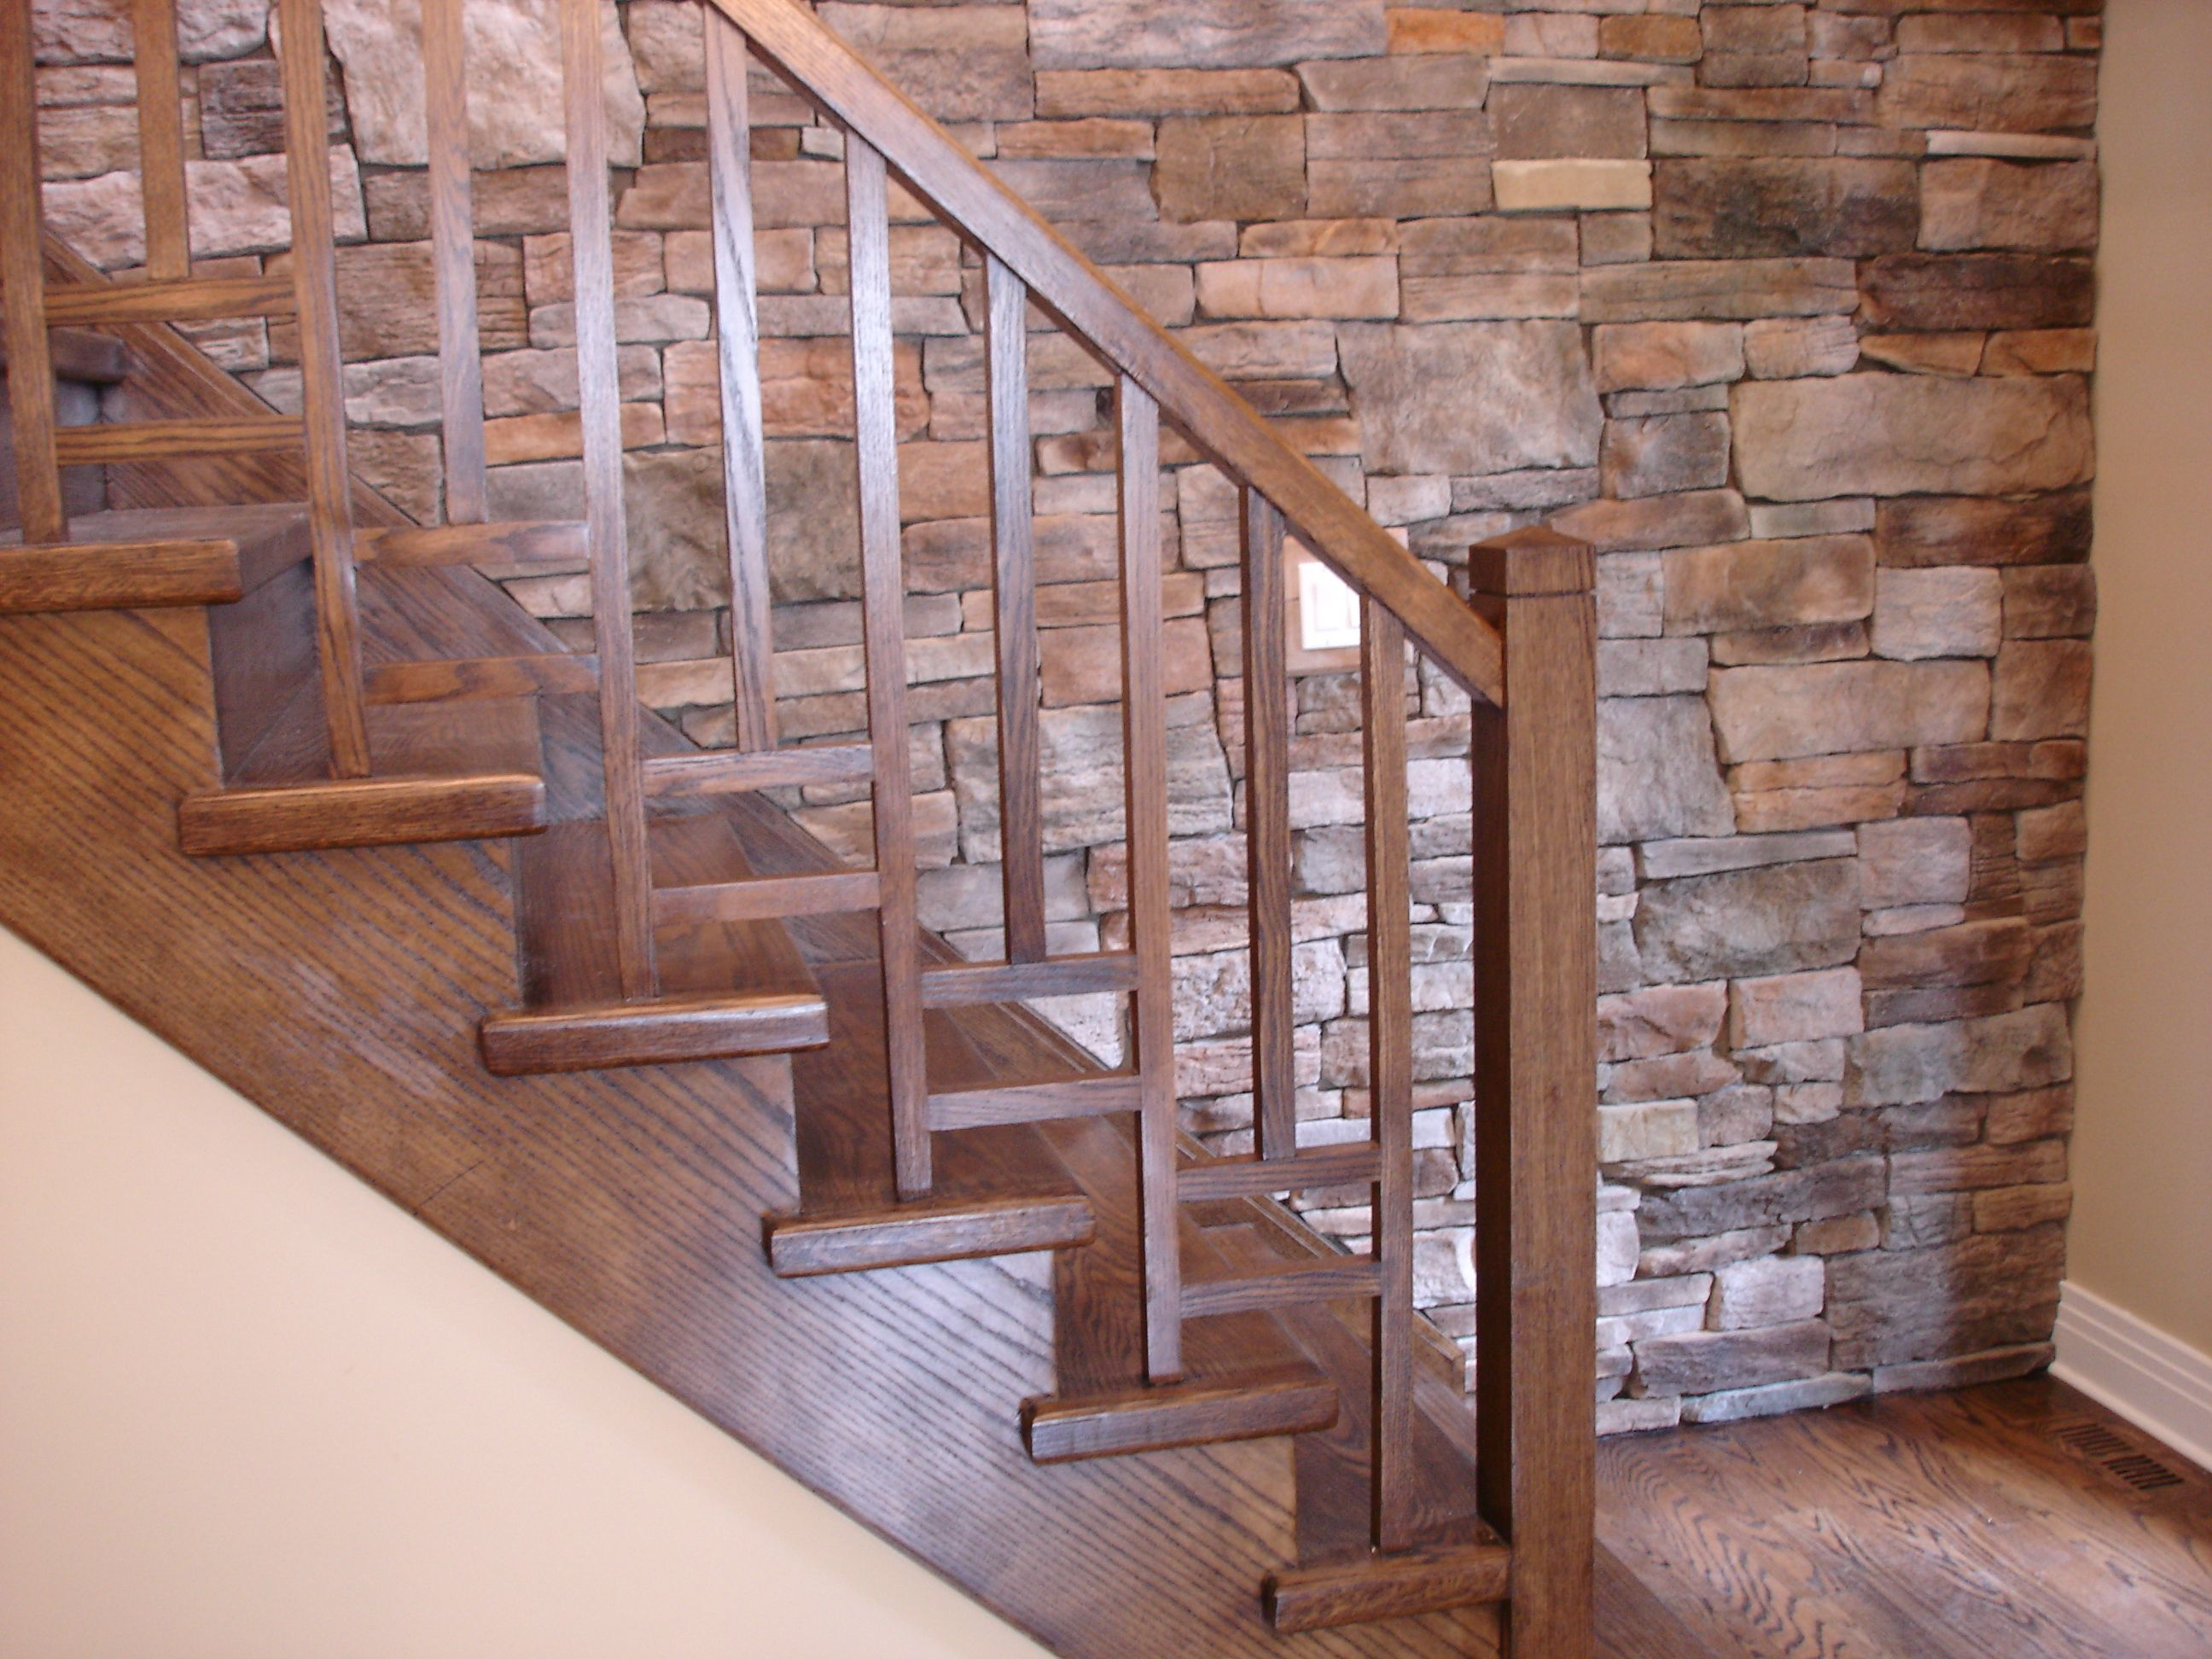 Stair Railing Types Stair Banisters And Railings Ideas Banister